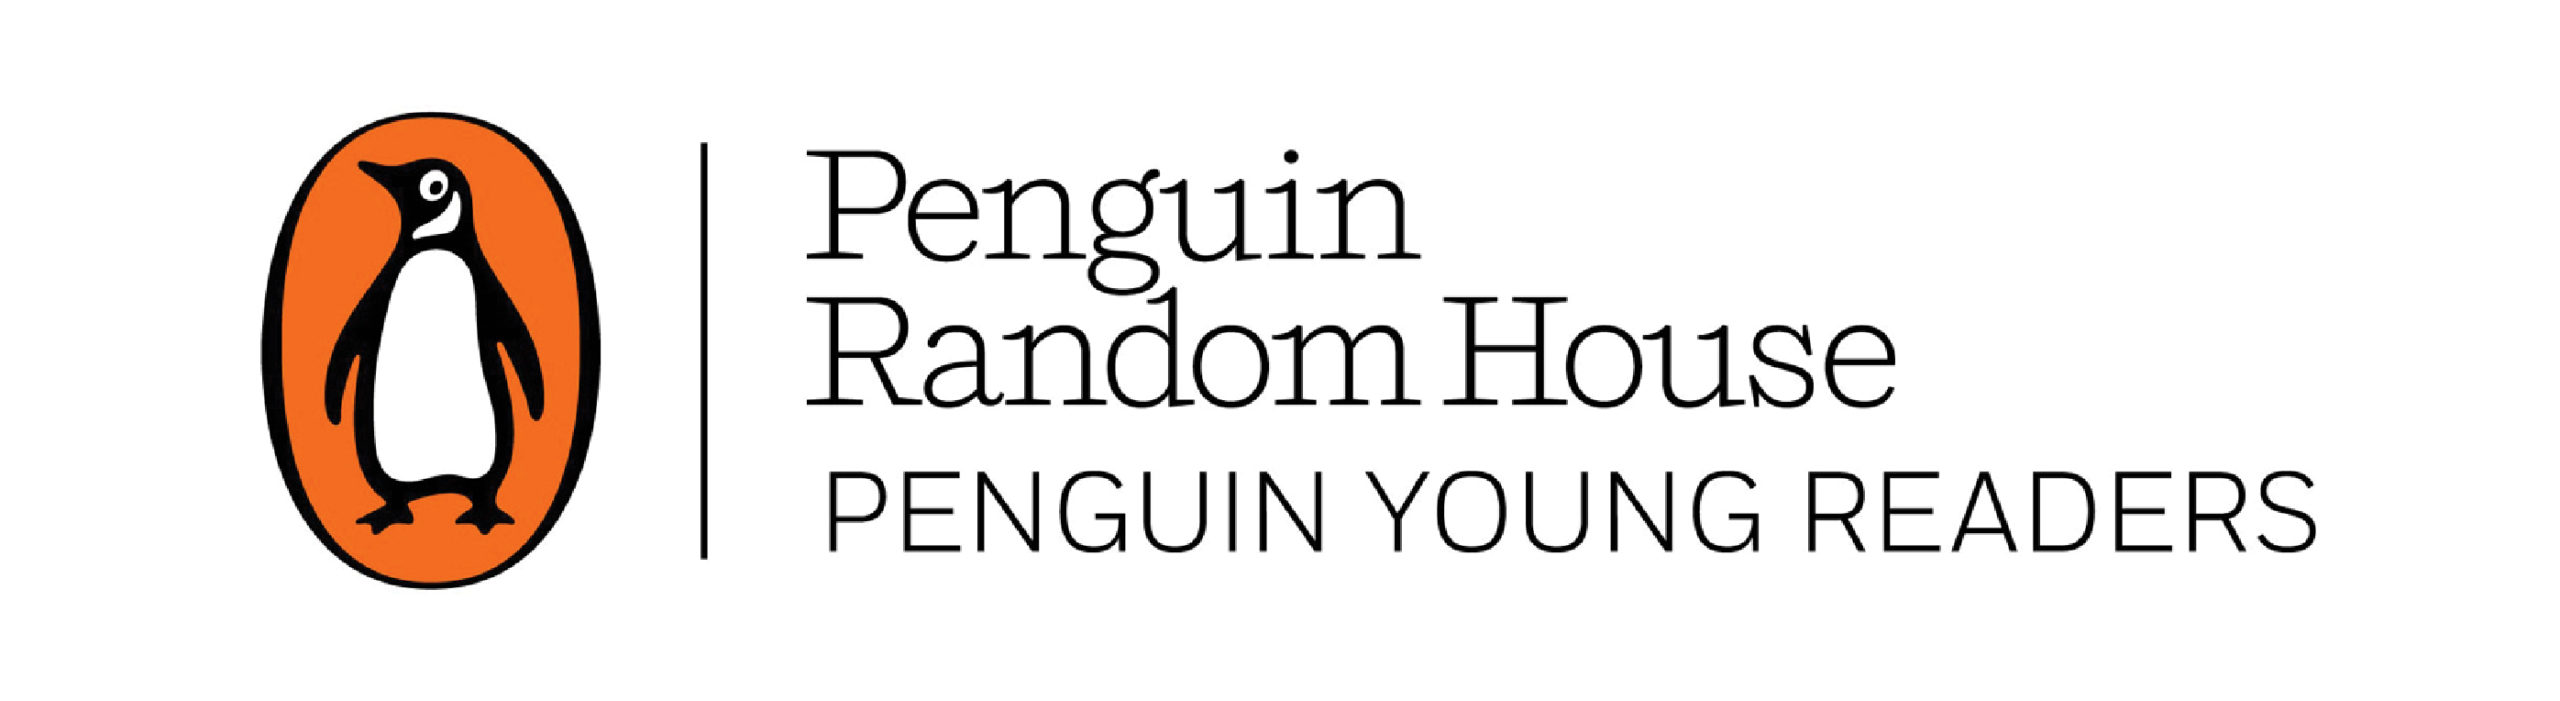 penguin_young_readers-01